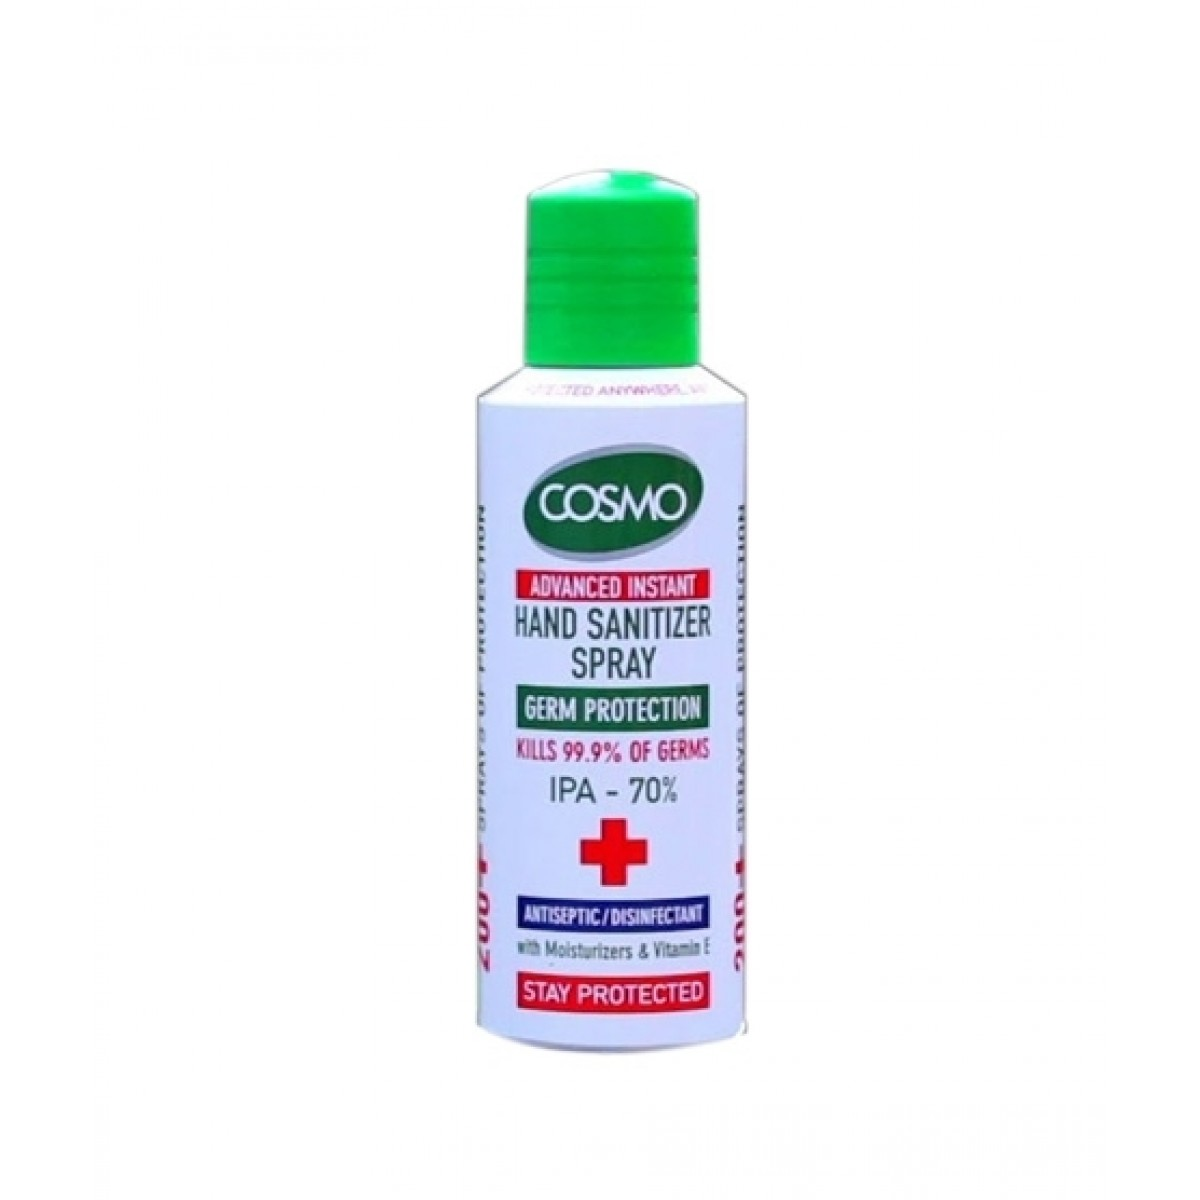 Cosmo Advanced Instant Disinfectant Hand Sanitizer Spray 200ml (70% Alcohol ISO Certified)